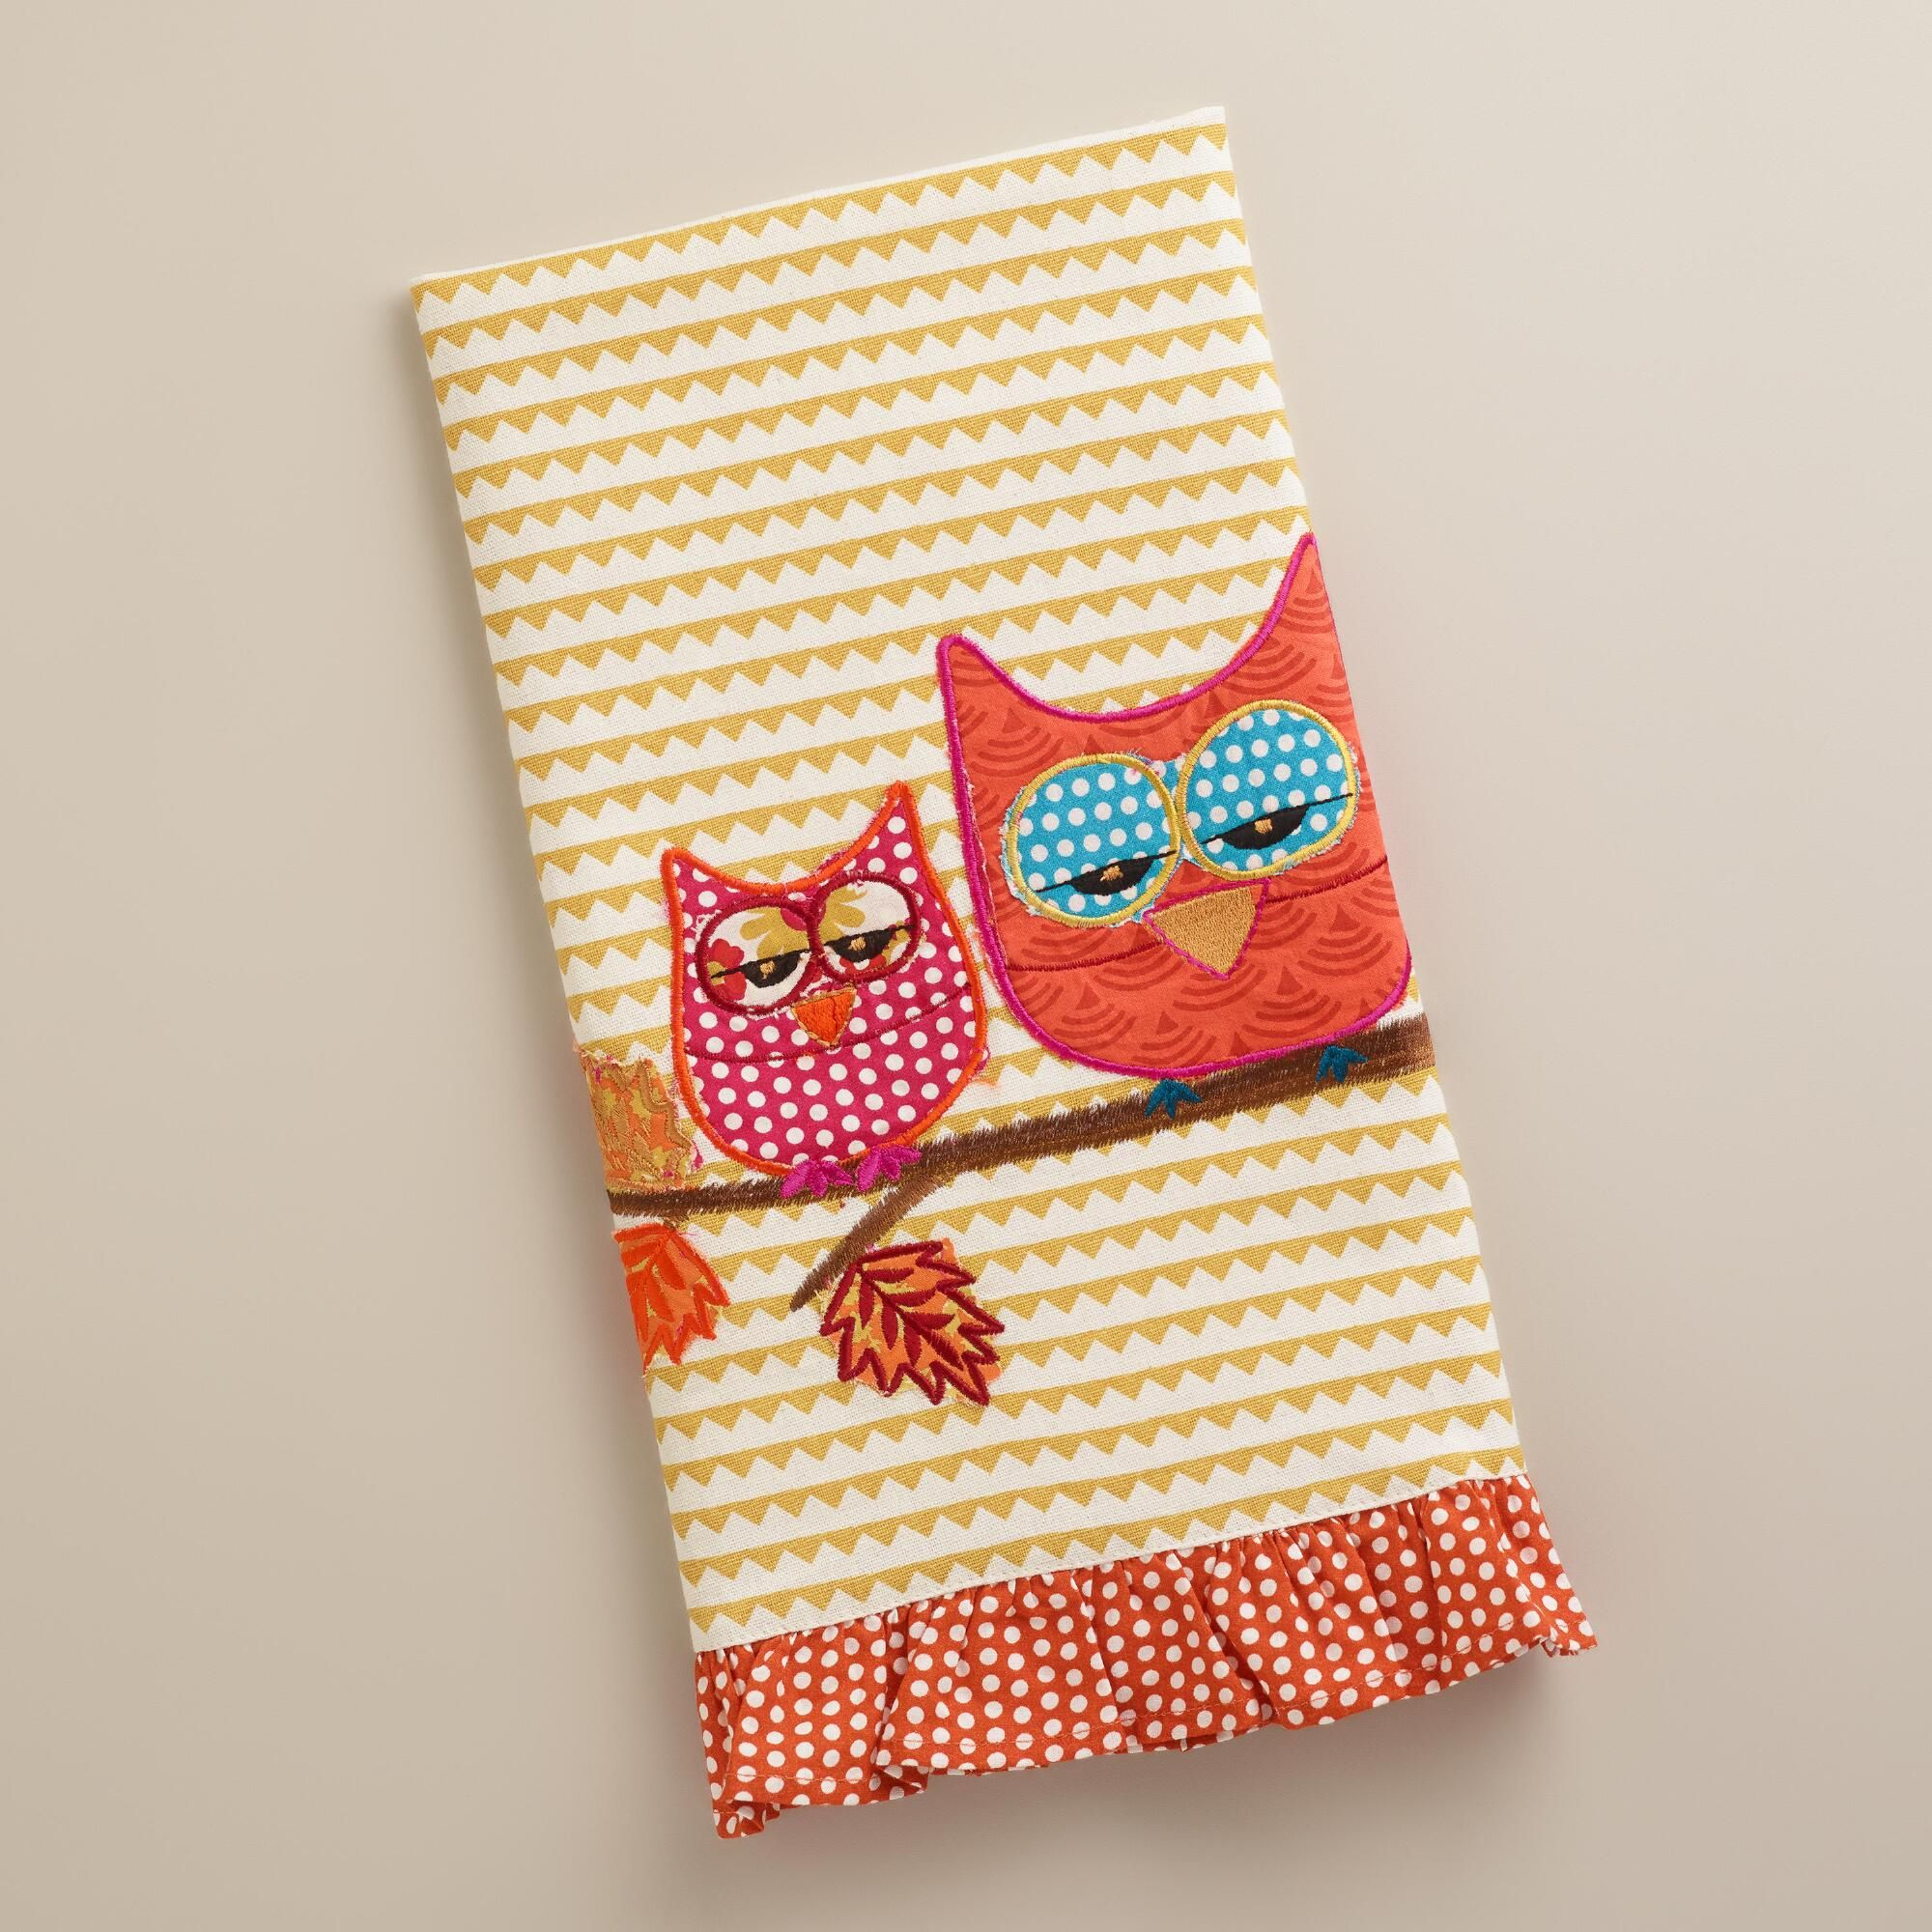 A Fun Way To Enjoy Teatime, Our Two Owls Decorative Tea Towel From India  Brings